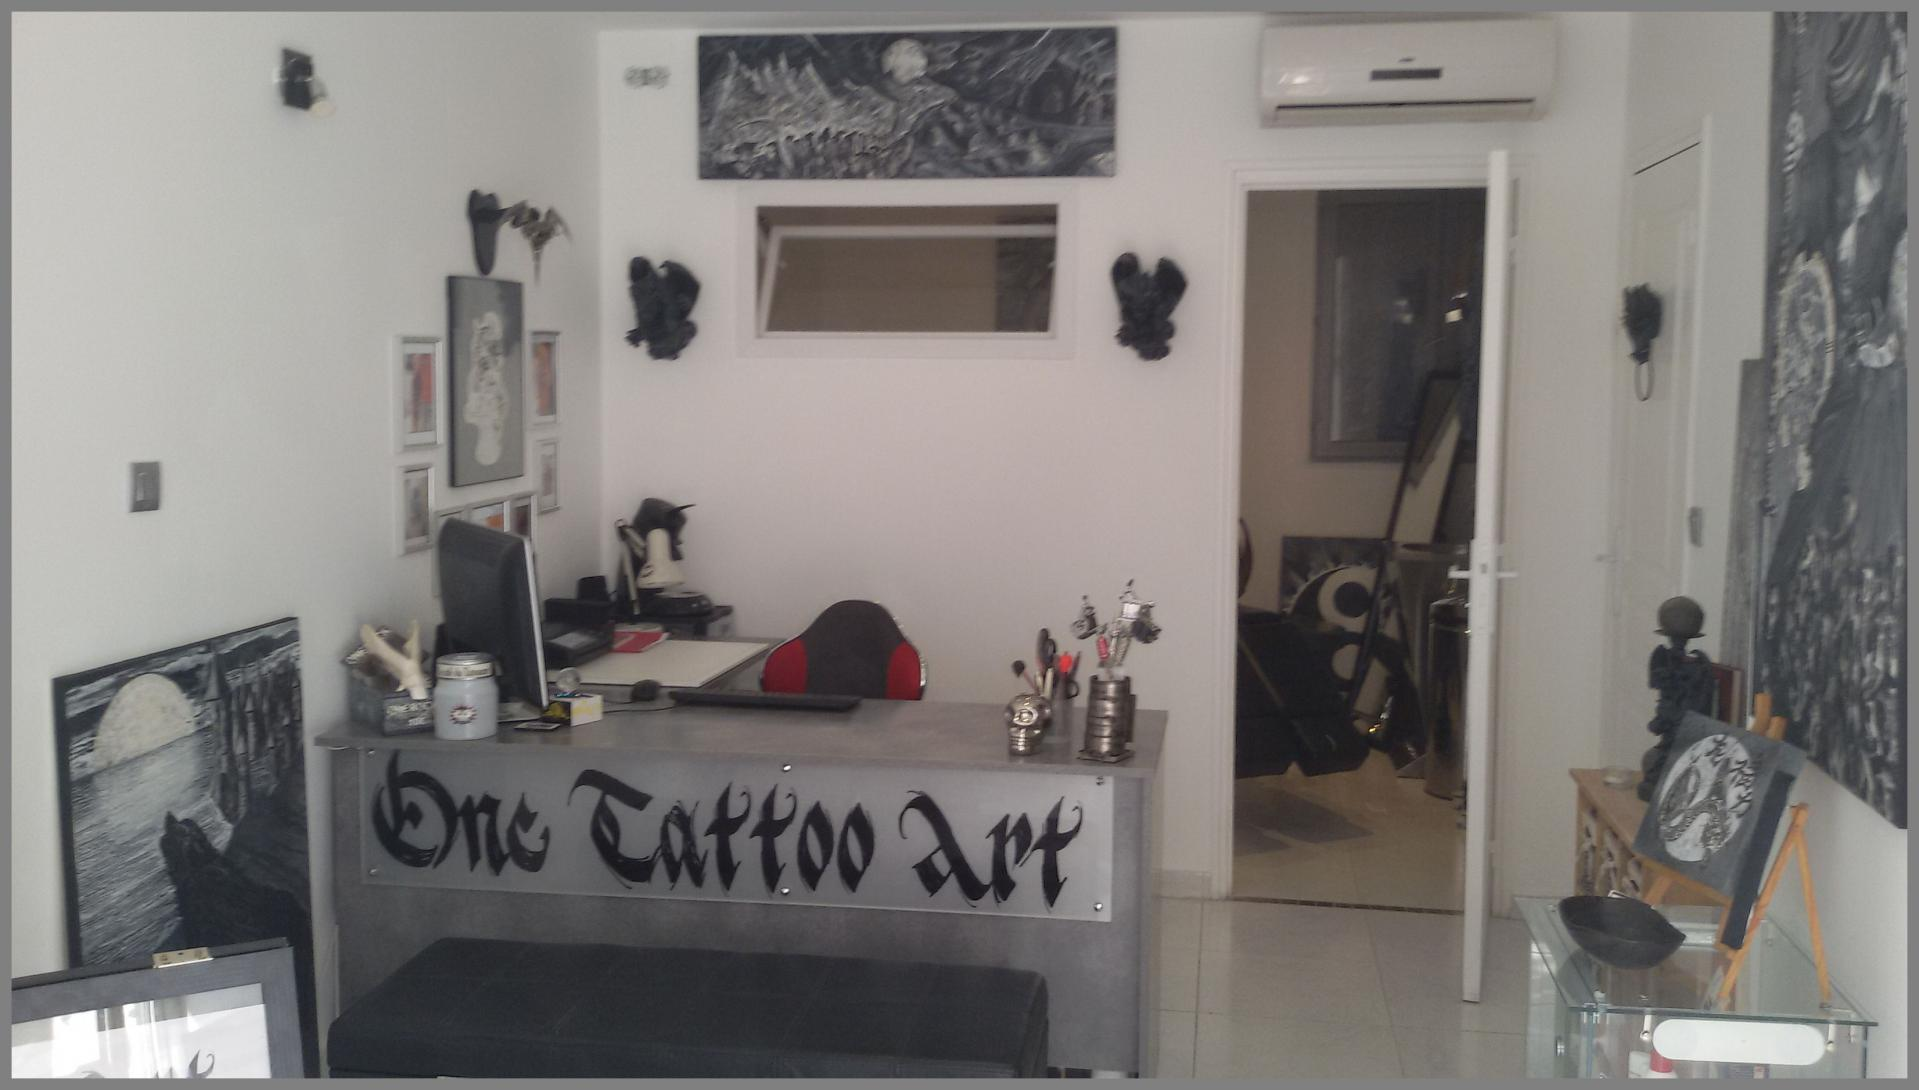 Salon one tattoo art frejus